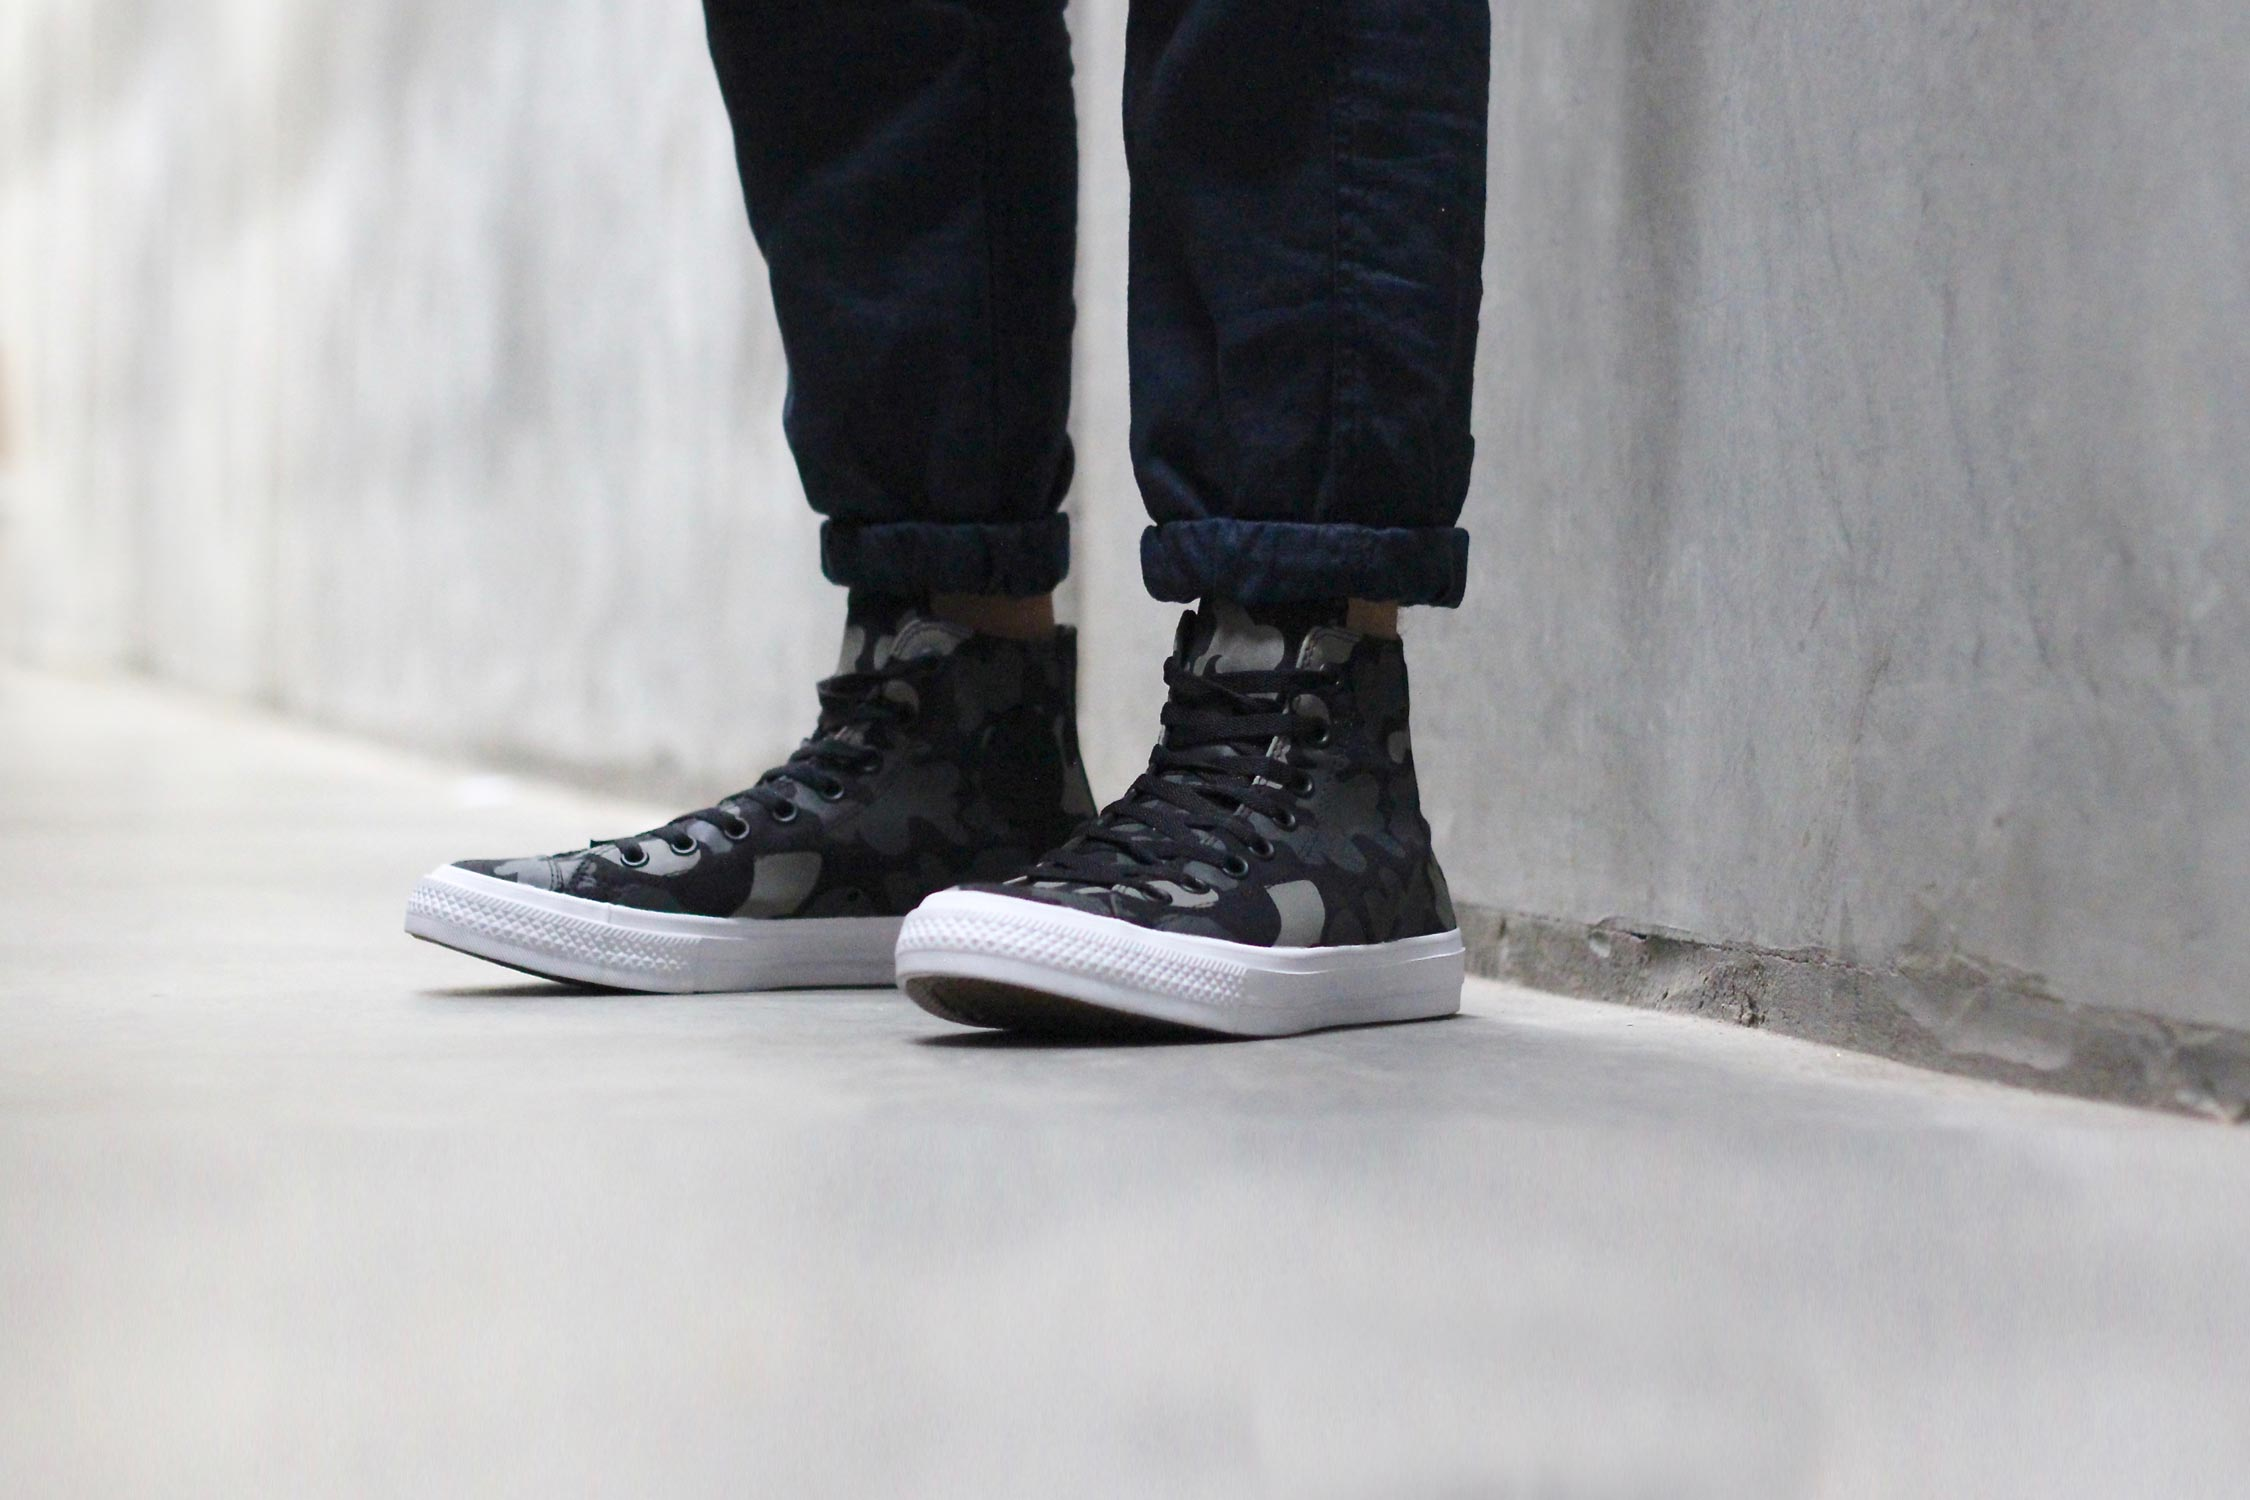 cc493d504f4e Converse Chuck Taylor All Star II Reflective Print Collection - HEY ...